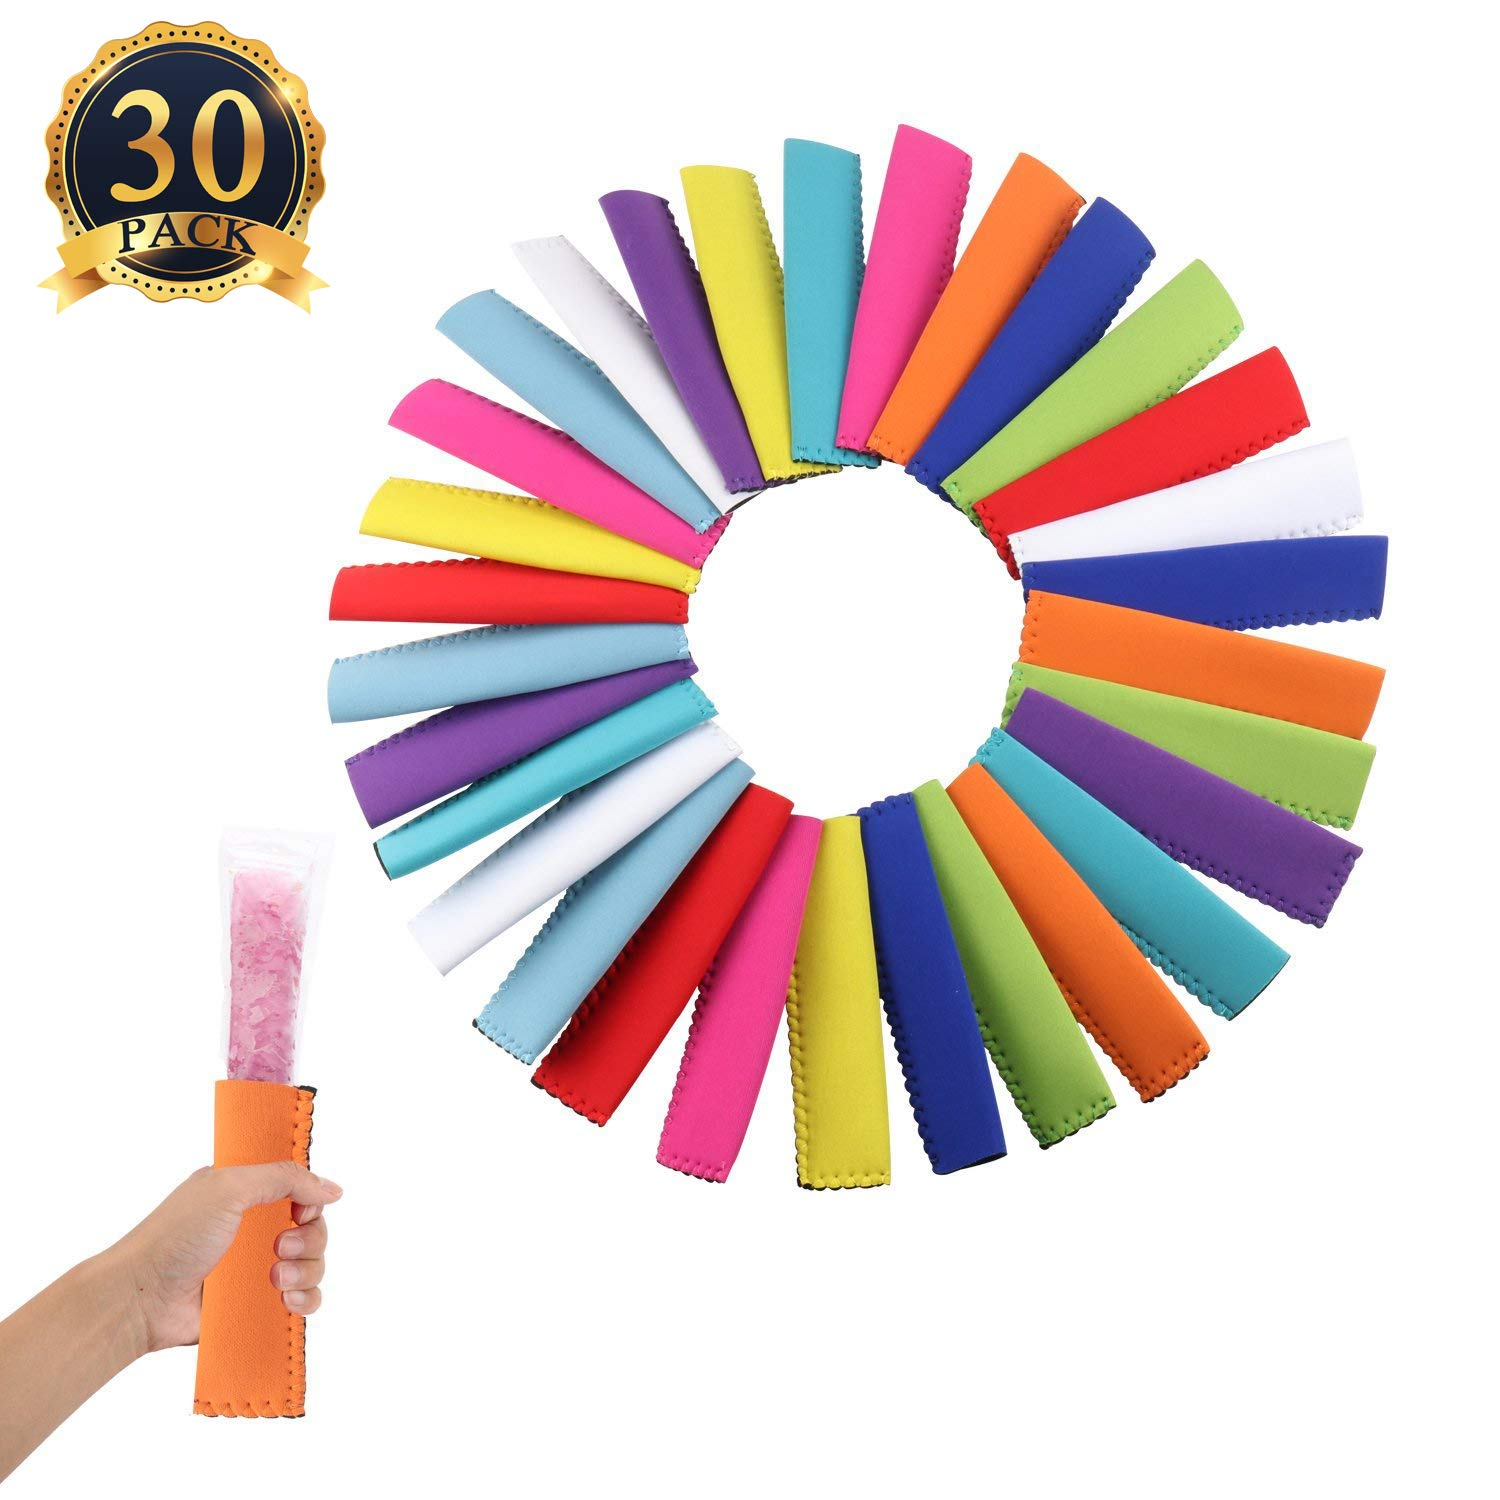 ''30 Pack Reusable Popsicle Bags Popsicle Holders Freezer Ice Pop Antifreezing Sleeves - DIY Ice Pop, Otter Pop, Frozen Yogurt, Cocktail Treat''